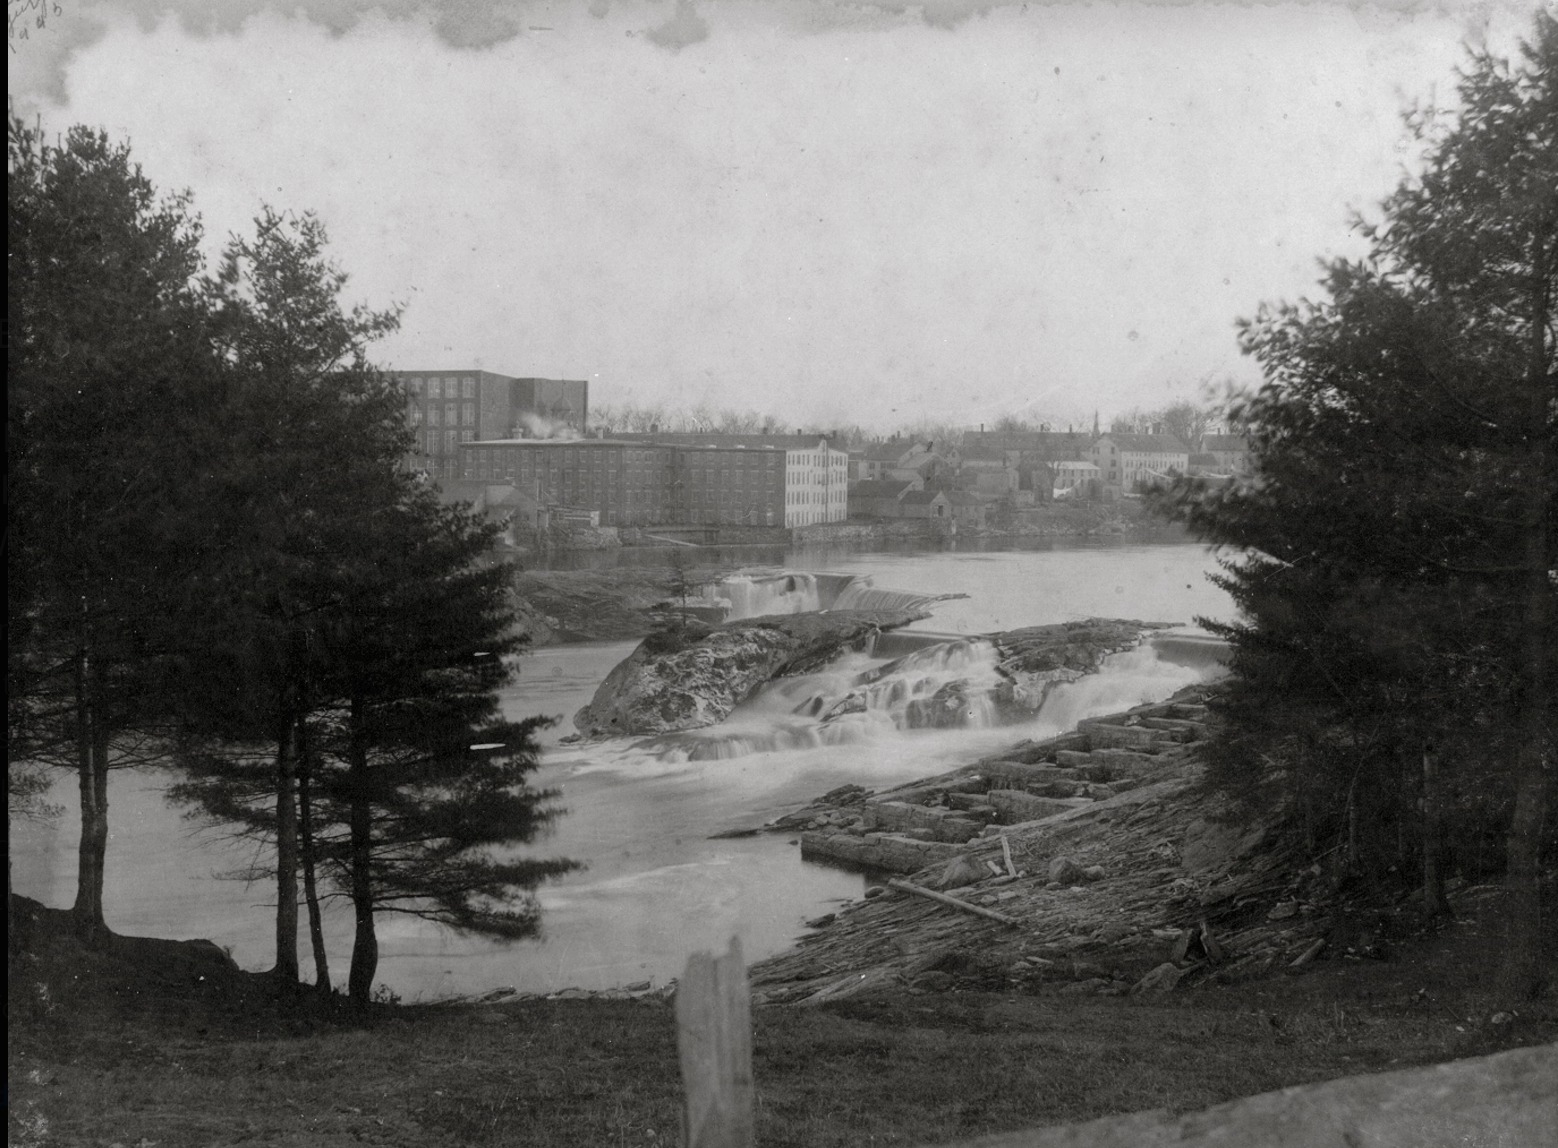 A picture of Fort Andros from across the river when it was first established.